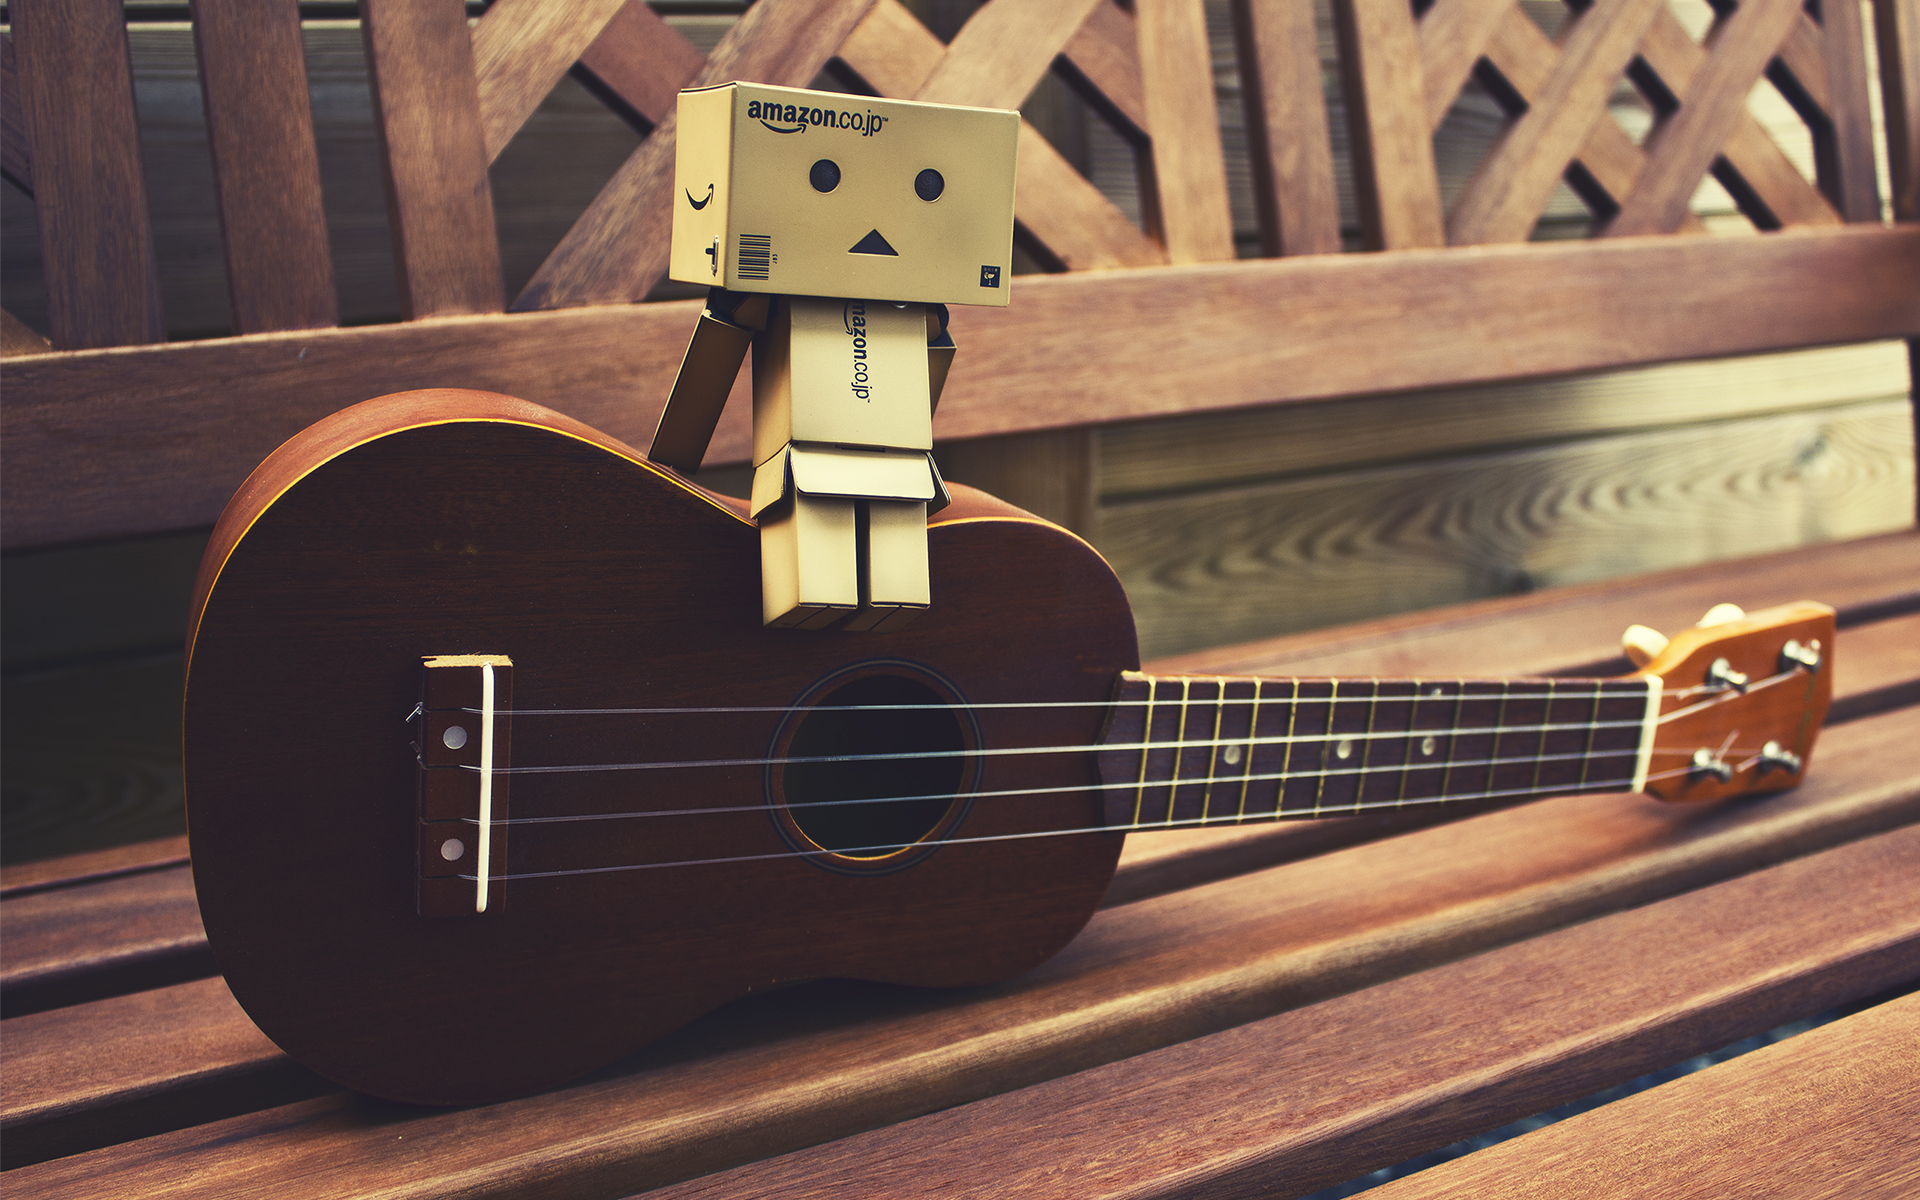 Cute Trumpet Wallpapers Ukulele Wallpaper High Definition High Quality Widescreen